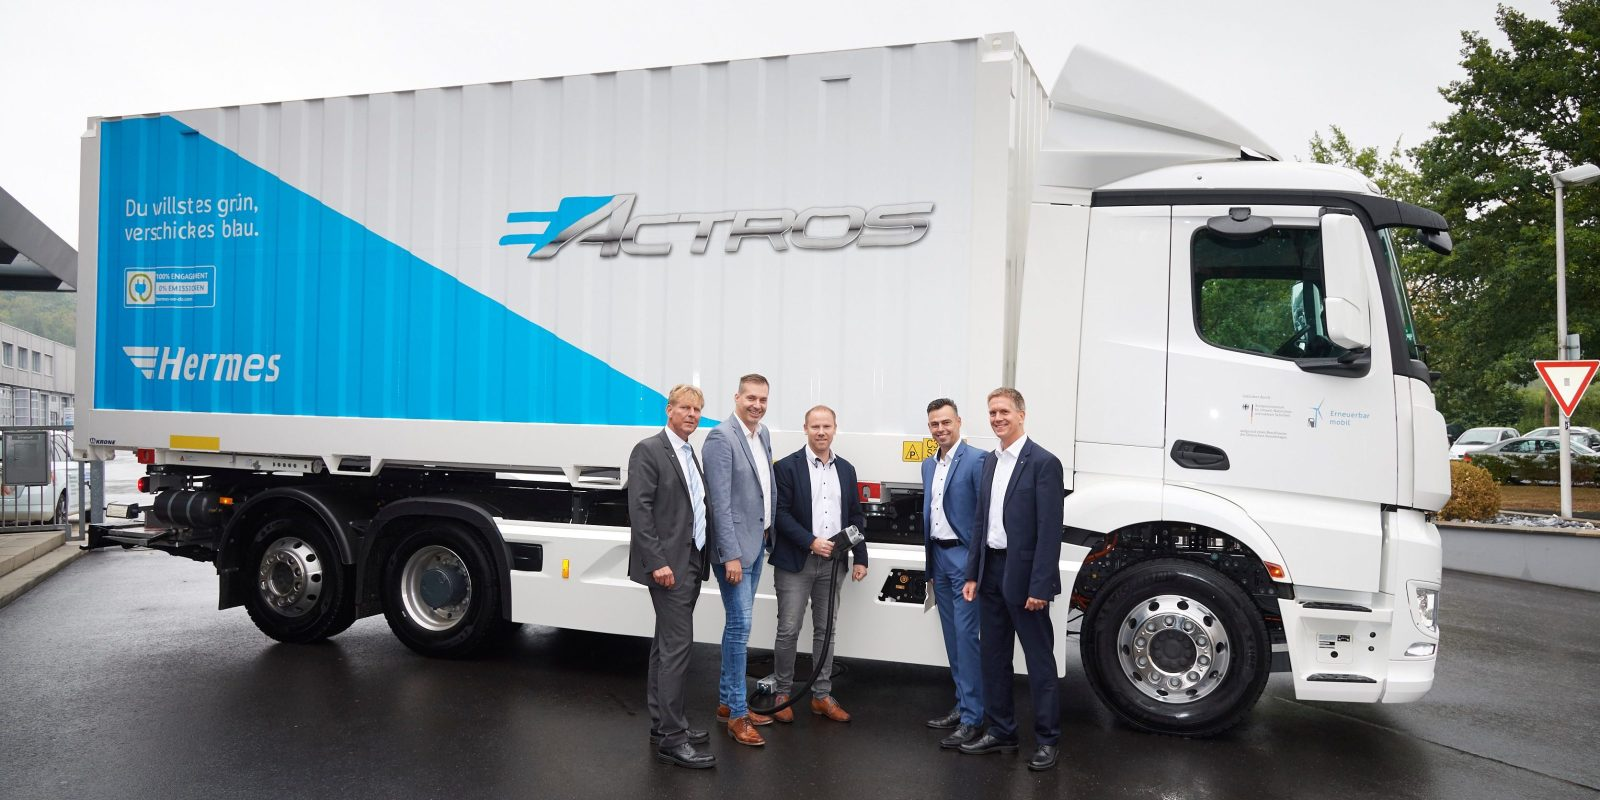 Mercedes Benz Delivers First 10 Eactros All Electric Heavy Duty Trucks